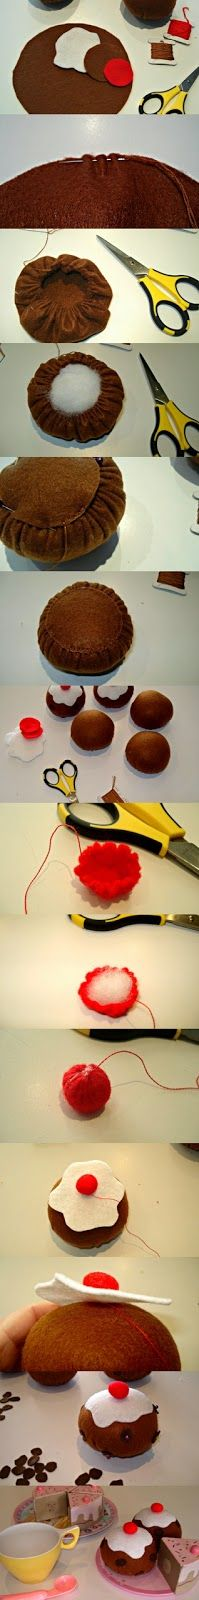 cupcake cutie: Don't fall over its a tutorial!: Felt Currant Buns